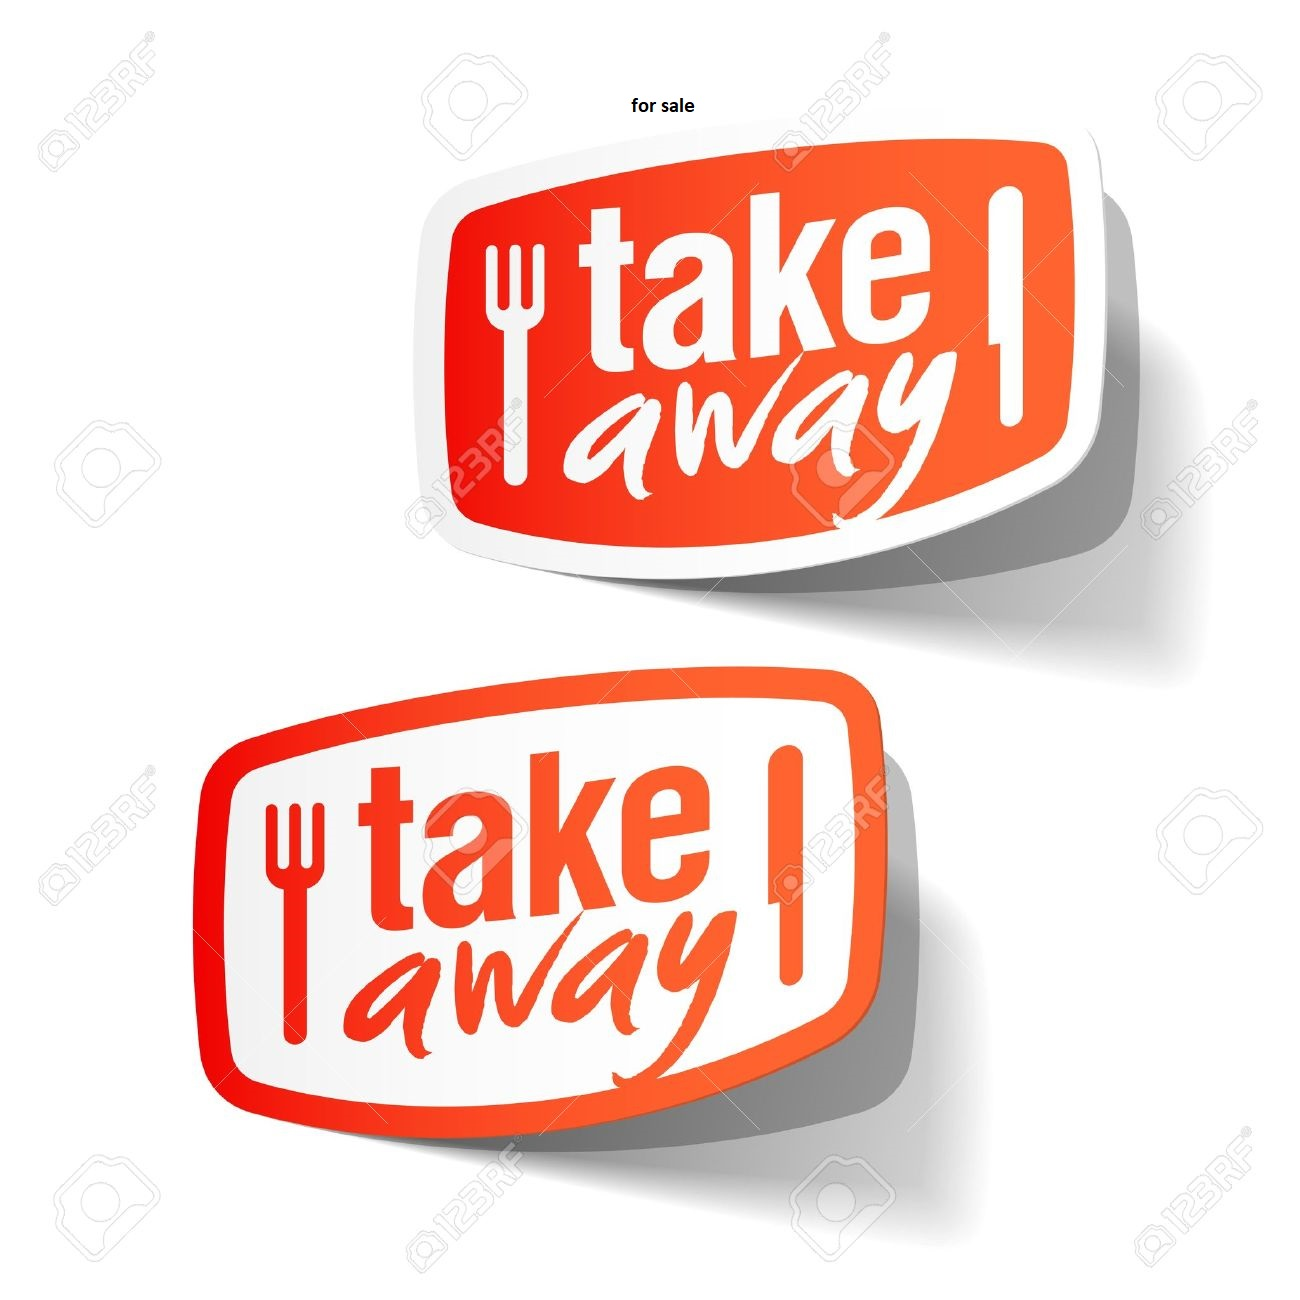 Take away for sale !